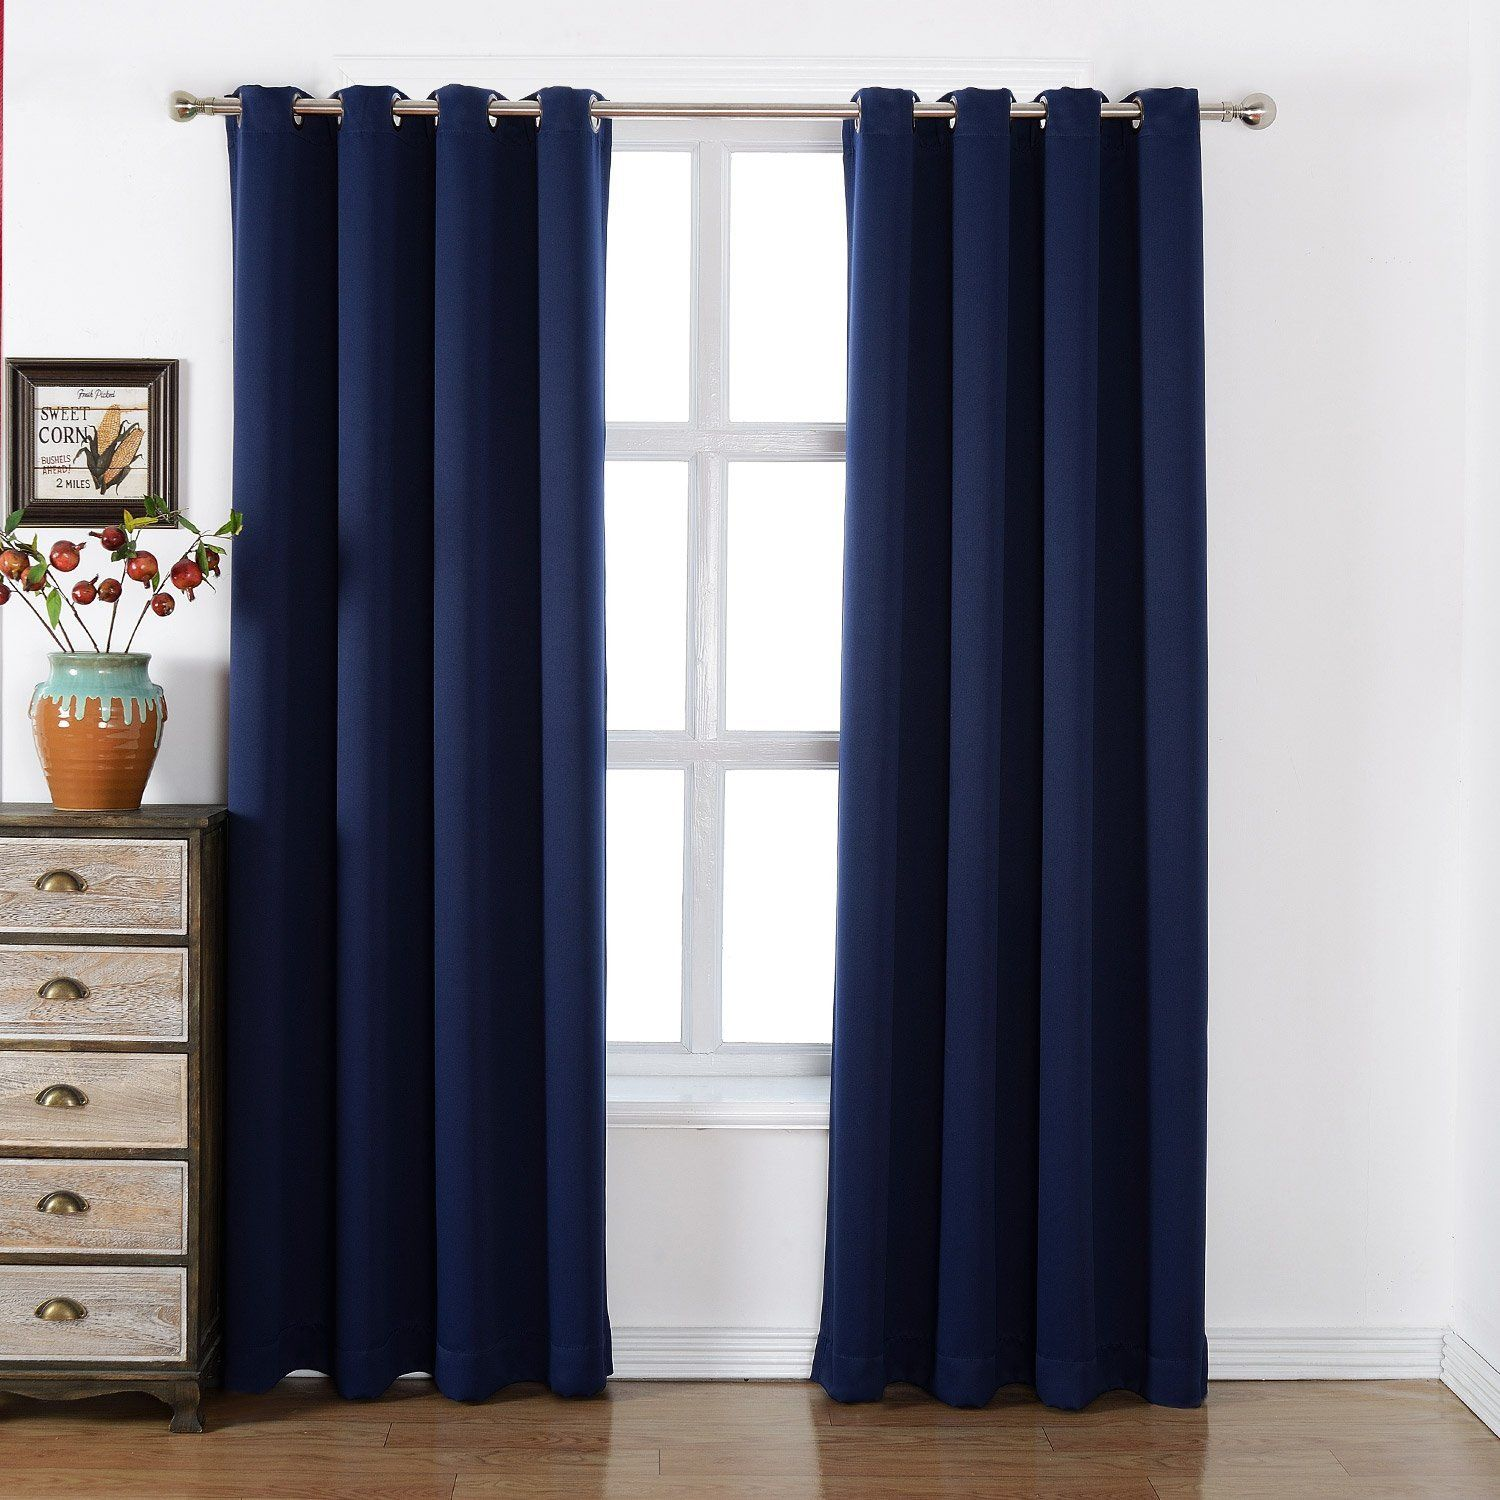 blackout pair curtains burgandy insulated co dp thermal uk solid kitchen curtain amazon length home